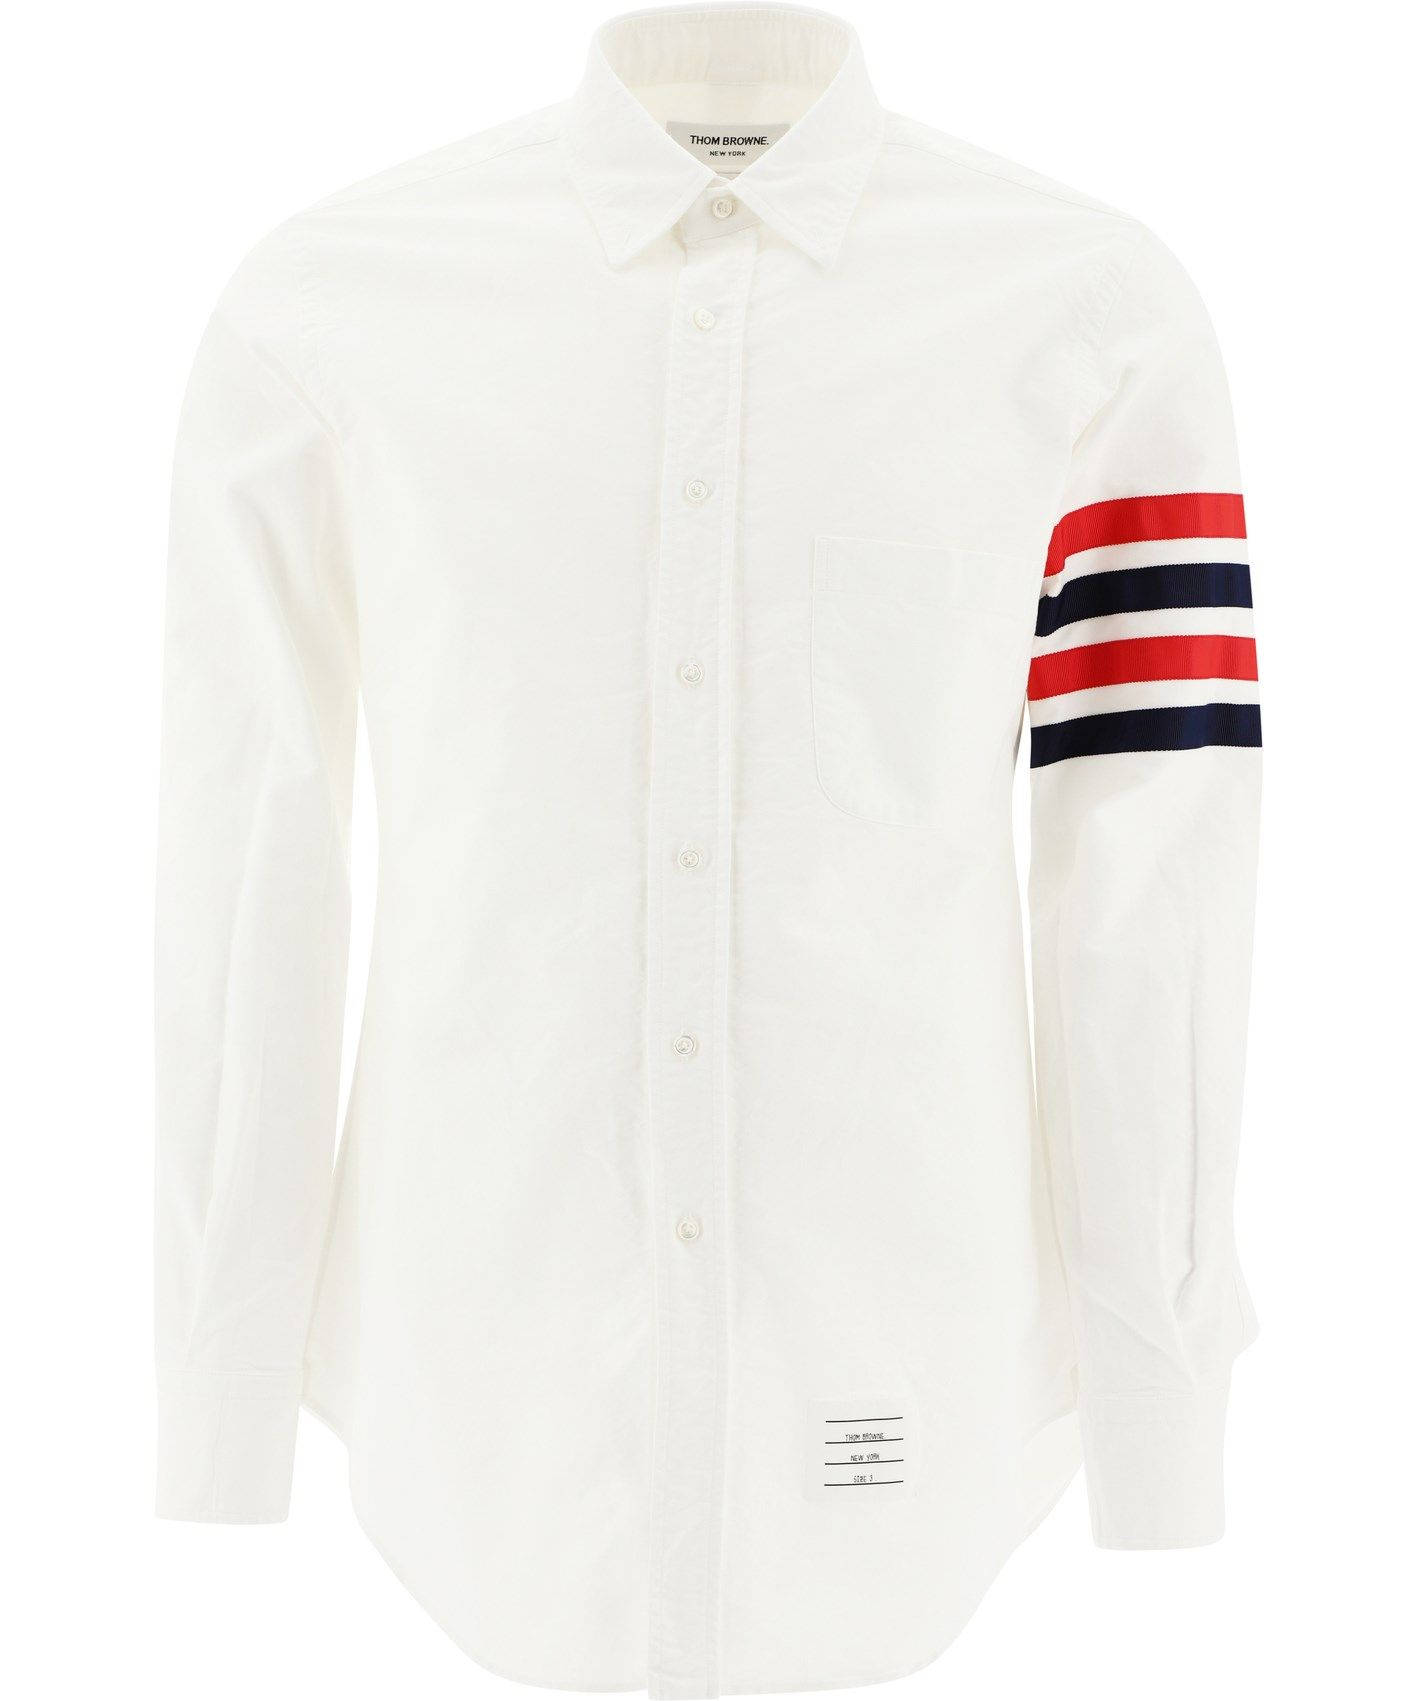 Thom Browne Shirts THOM BROWNE MEN'S MWL319A06177100 WHITE OTHER MATERIALS SHIRT